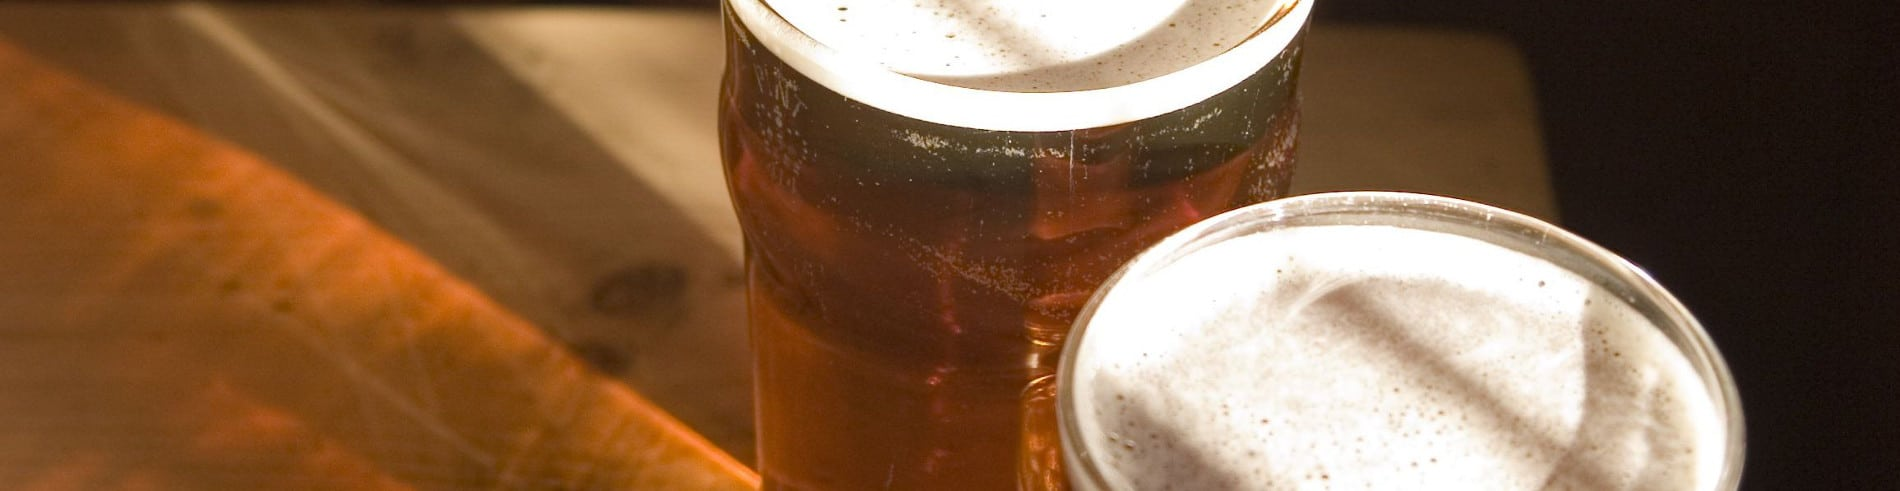 Beer Sales fall in Q3